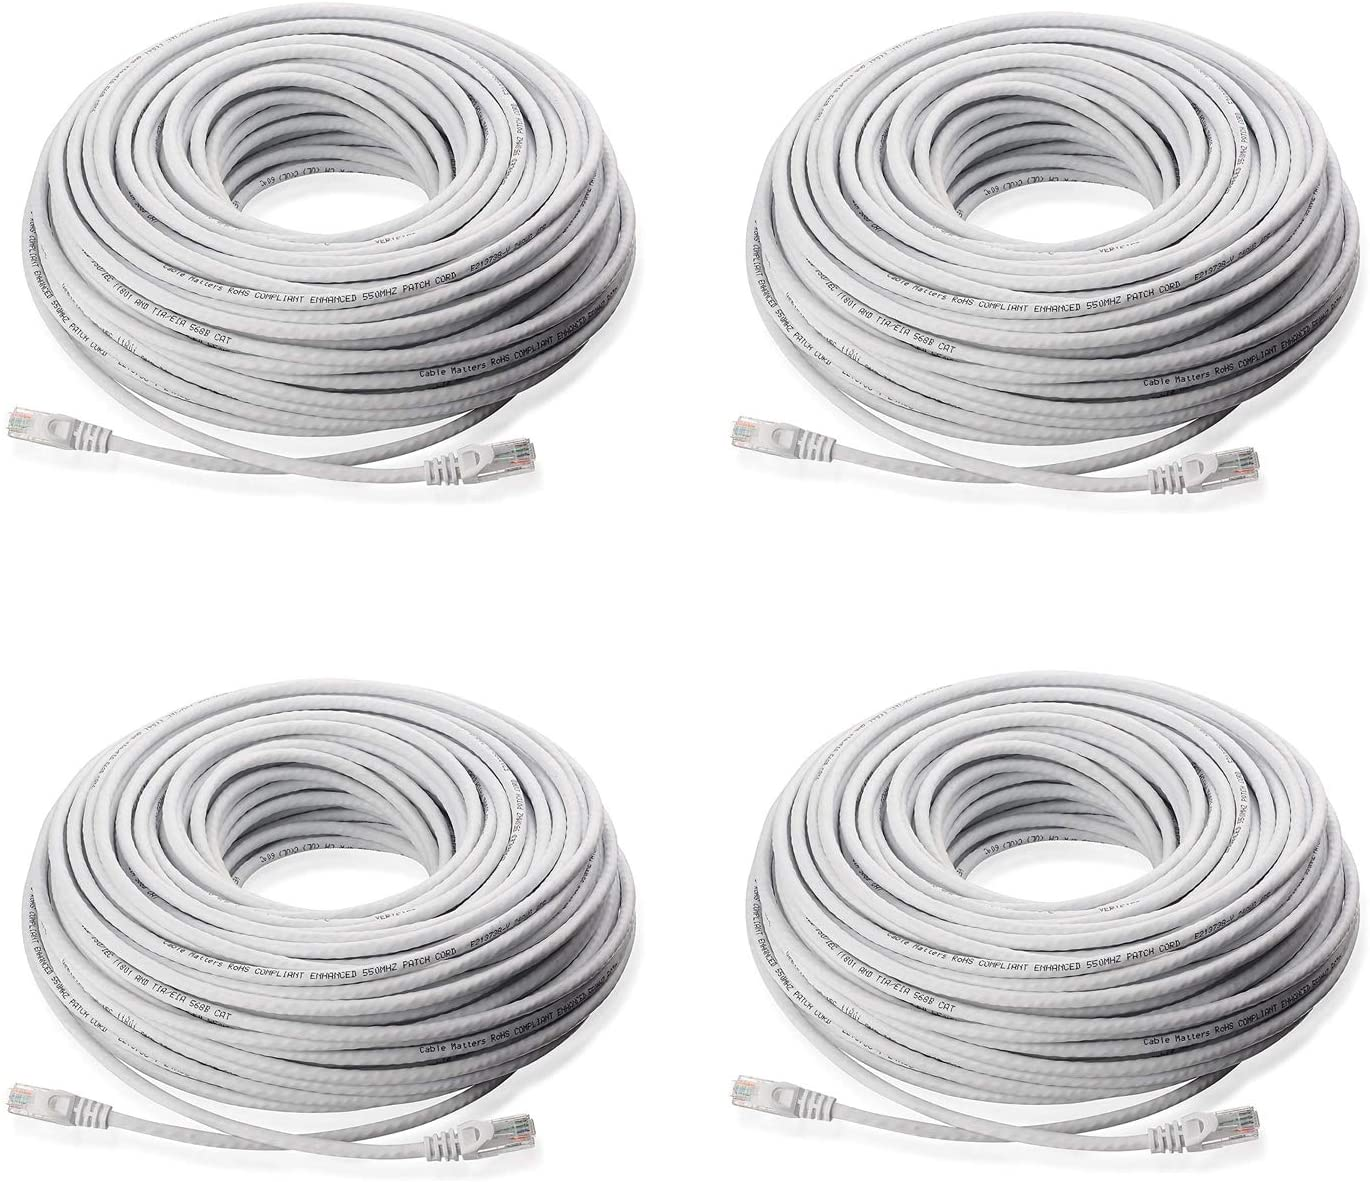 Lknewtrend (4) 150FT Feet CAT5 Cat5e Ethernet Patch Cable - RJ45 Computer Network Internet Wire PoE Switch Cord (4 Pack, 150 FT)